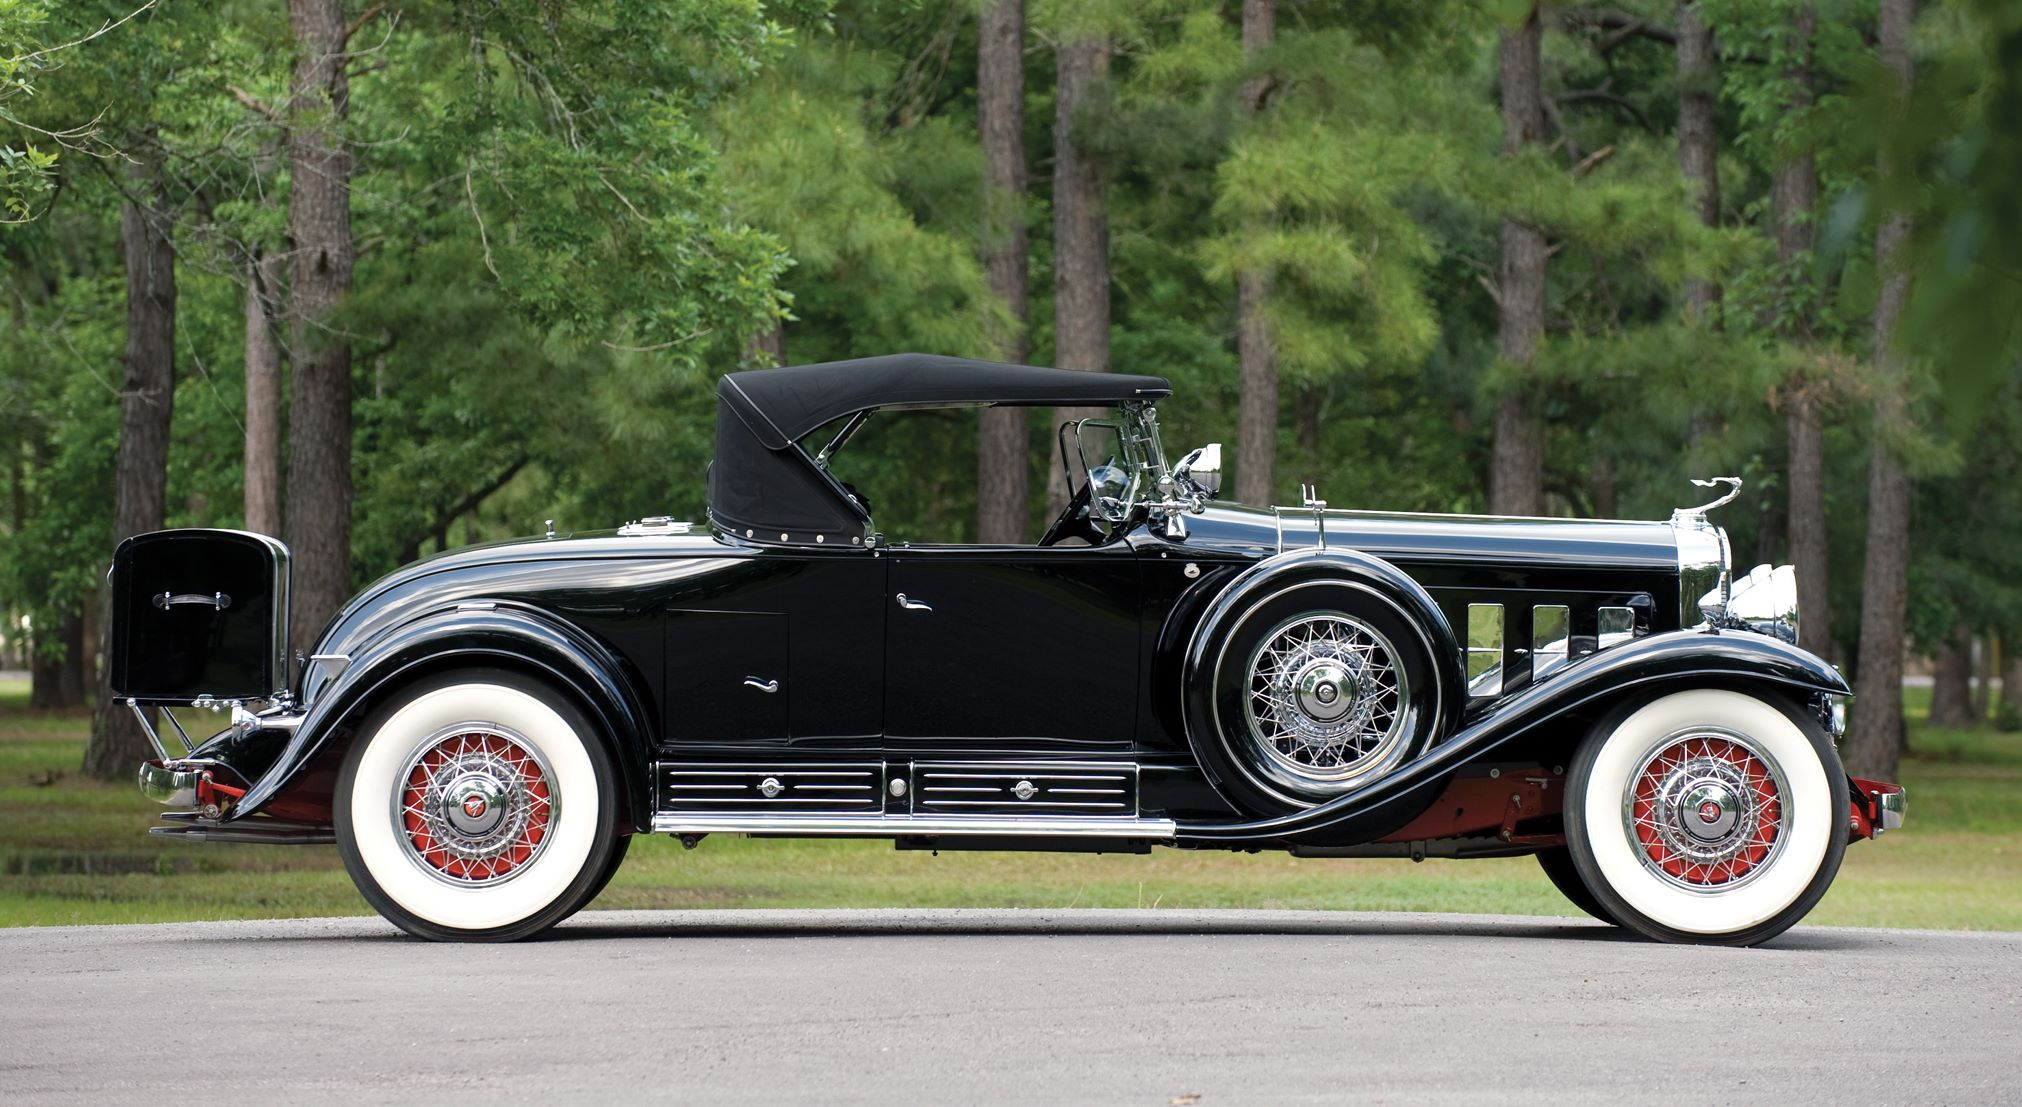 1930 Cadillac V16 Roadster Backgrounds on Wallpapers Vista